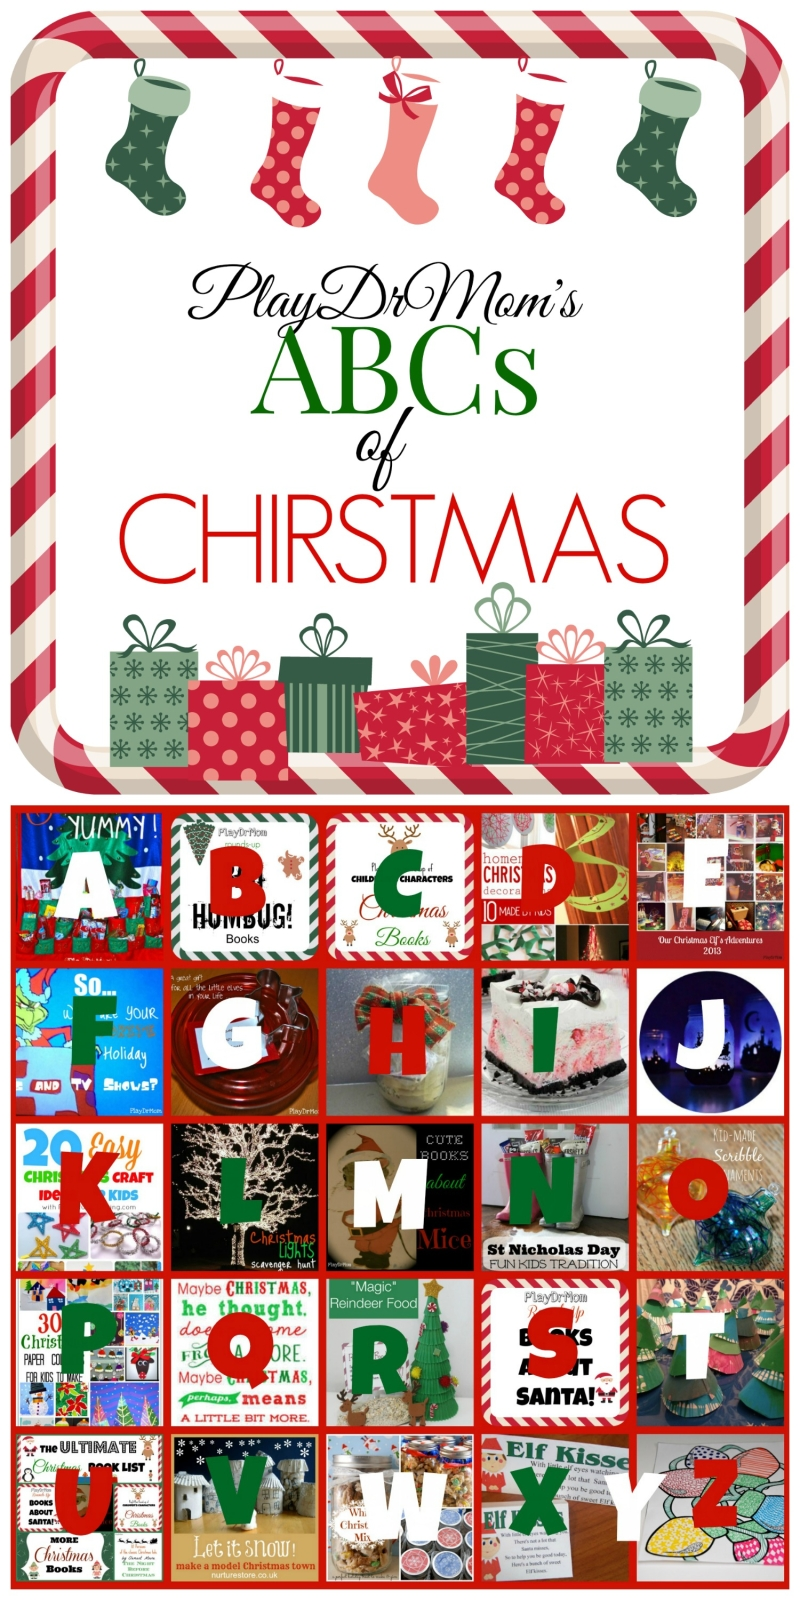 ABCs of Christmas … holiday fun from A to Z!